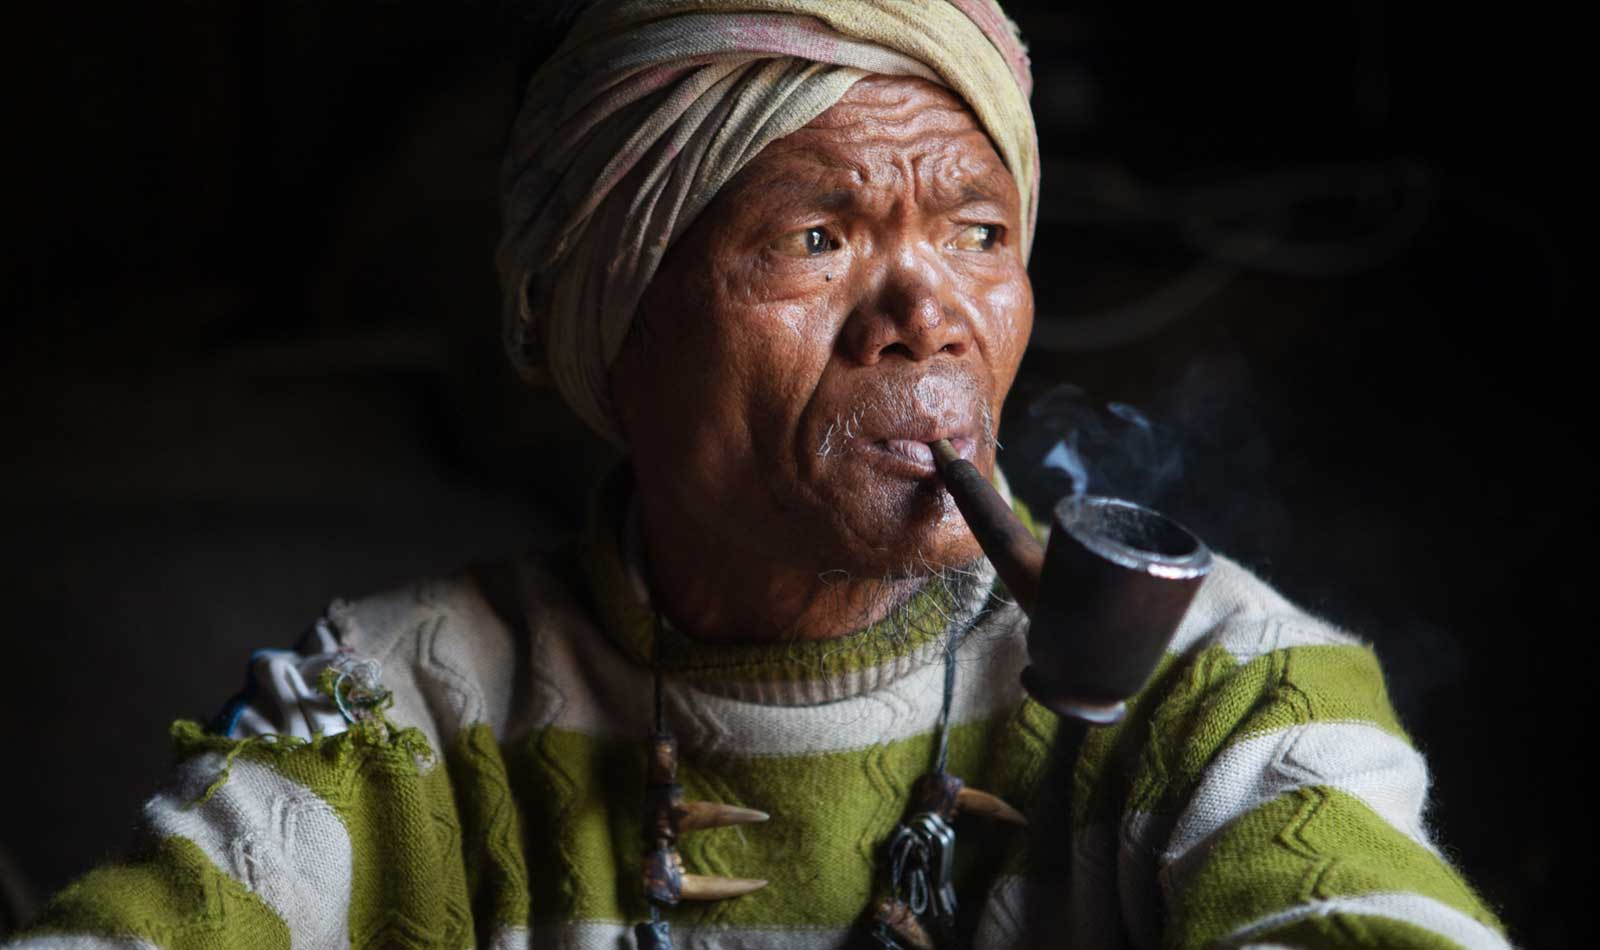 Myanmar-Chin-State-Tattooed-Faces-Man-Smoking.jpg